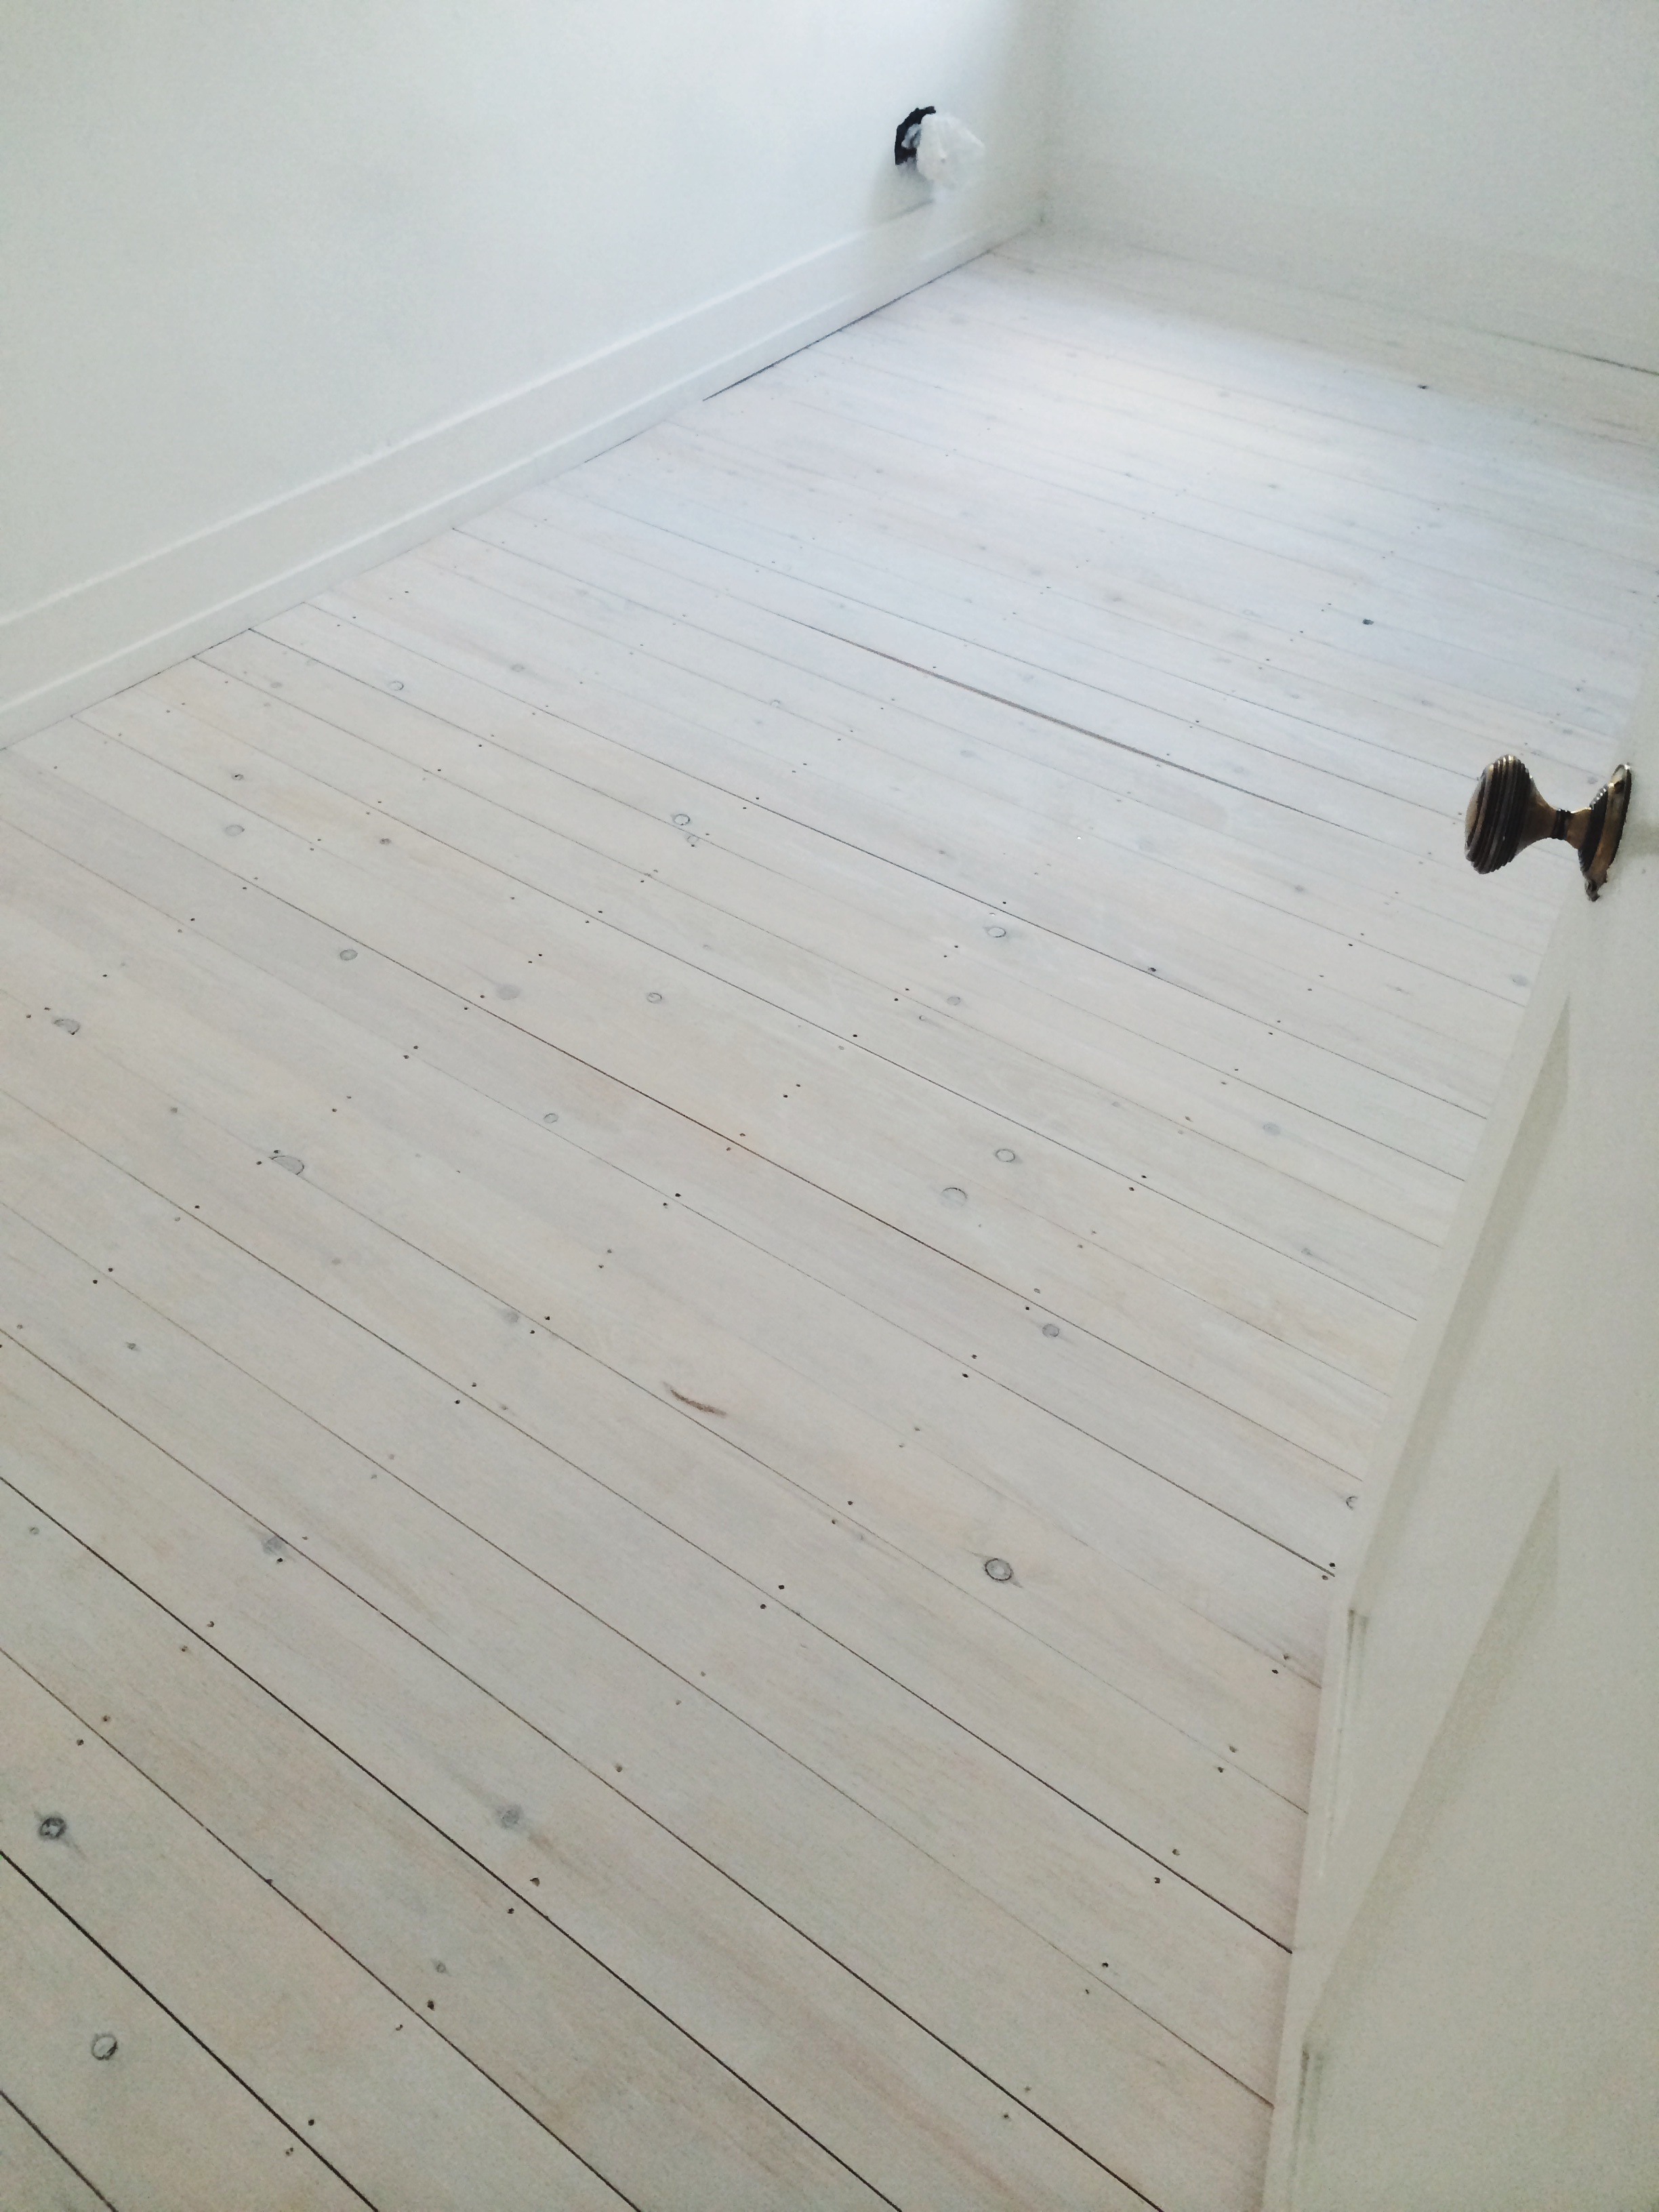 How to quickly easily d i y whitewashed floorboards White washed wood flooring